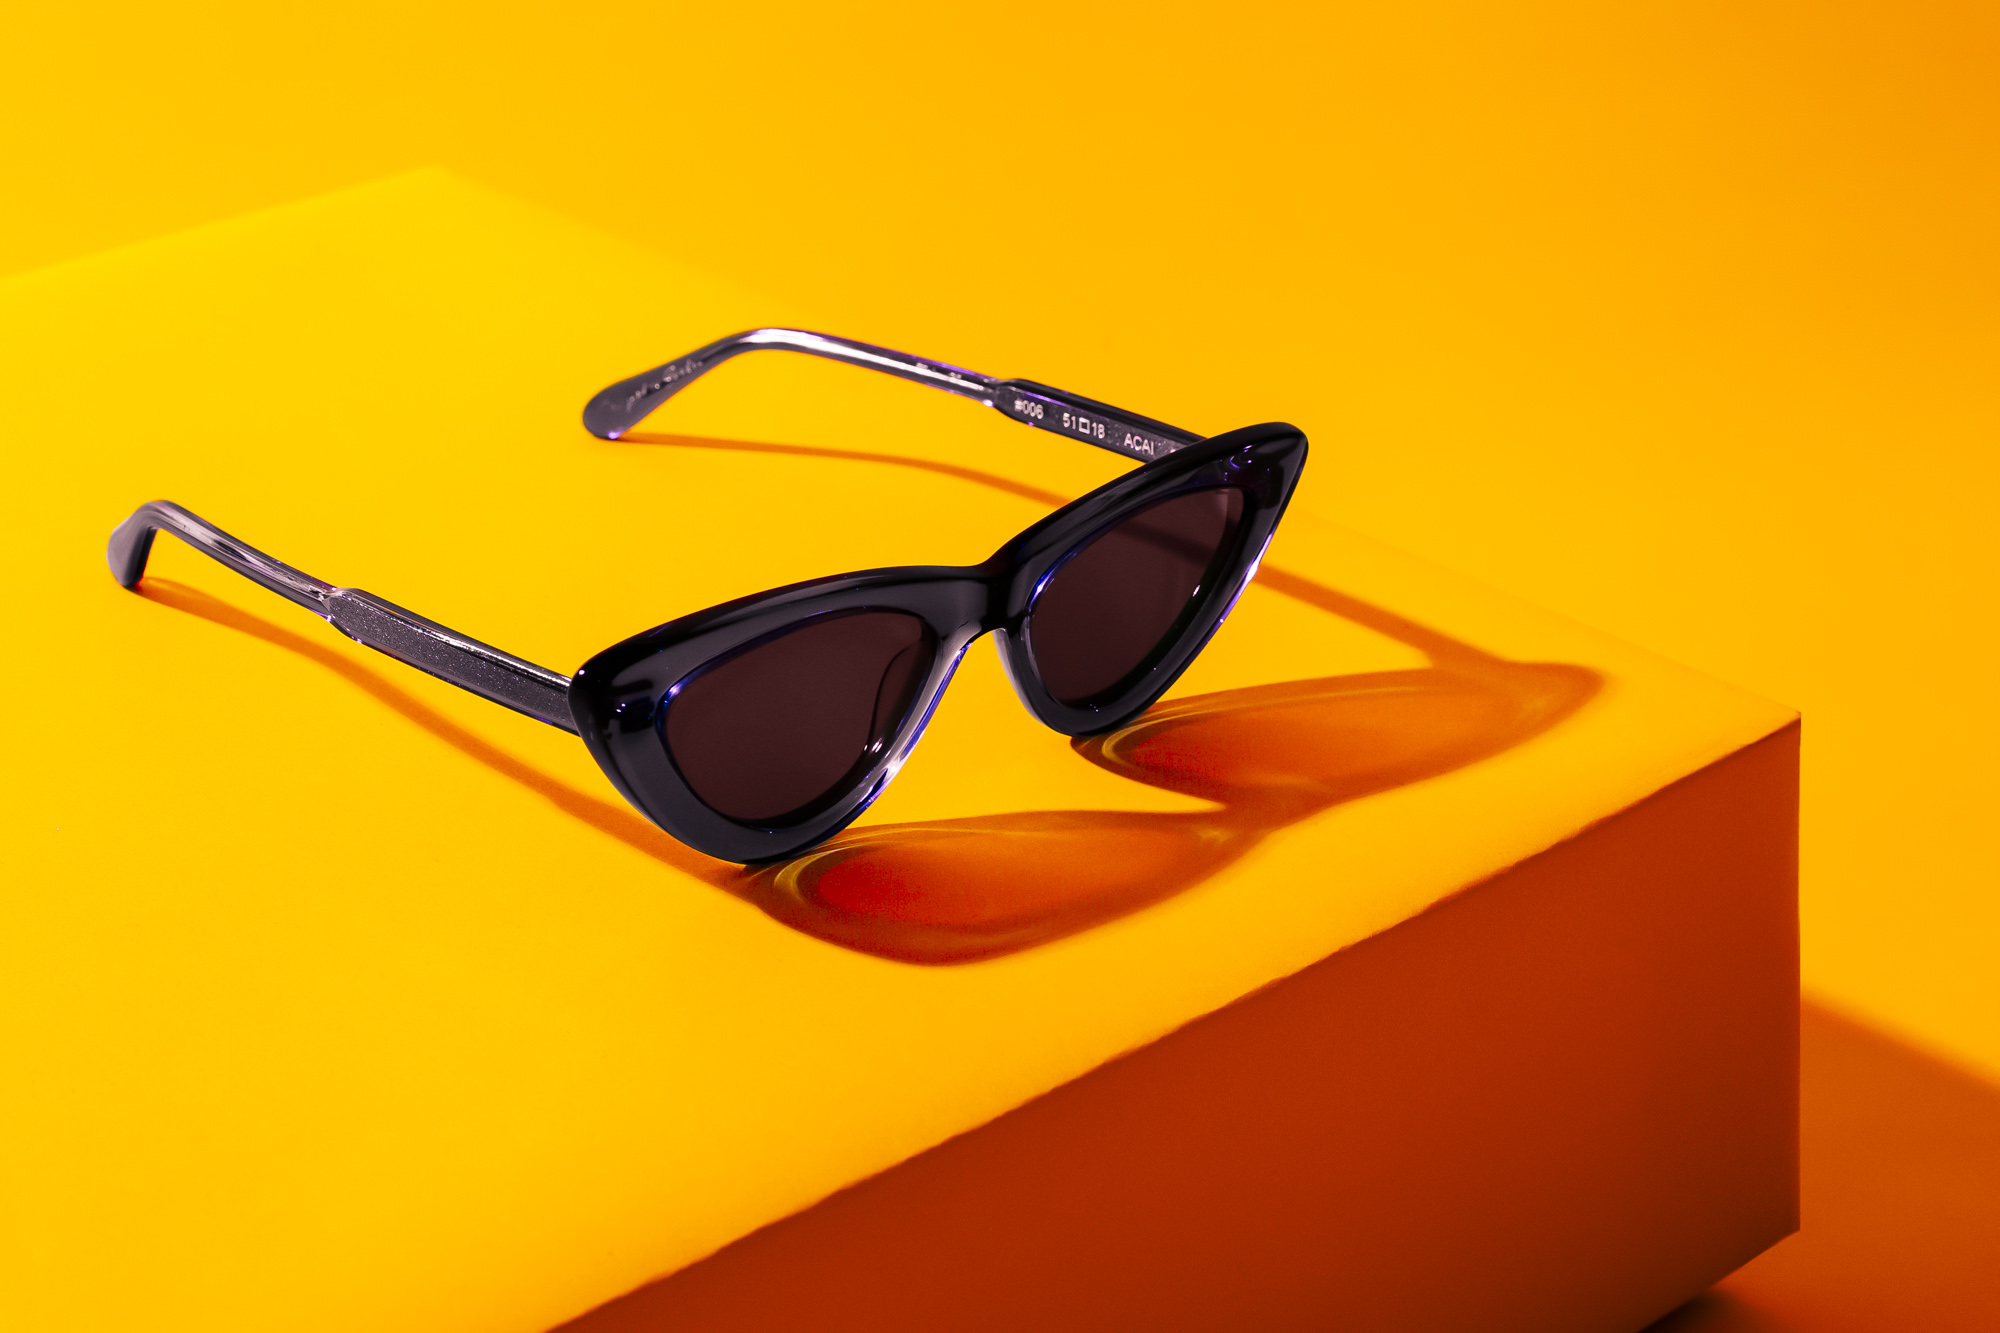 Chimi Eyewear Cat Eye Sunglasses, £85, Harvey Nichols